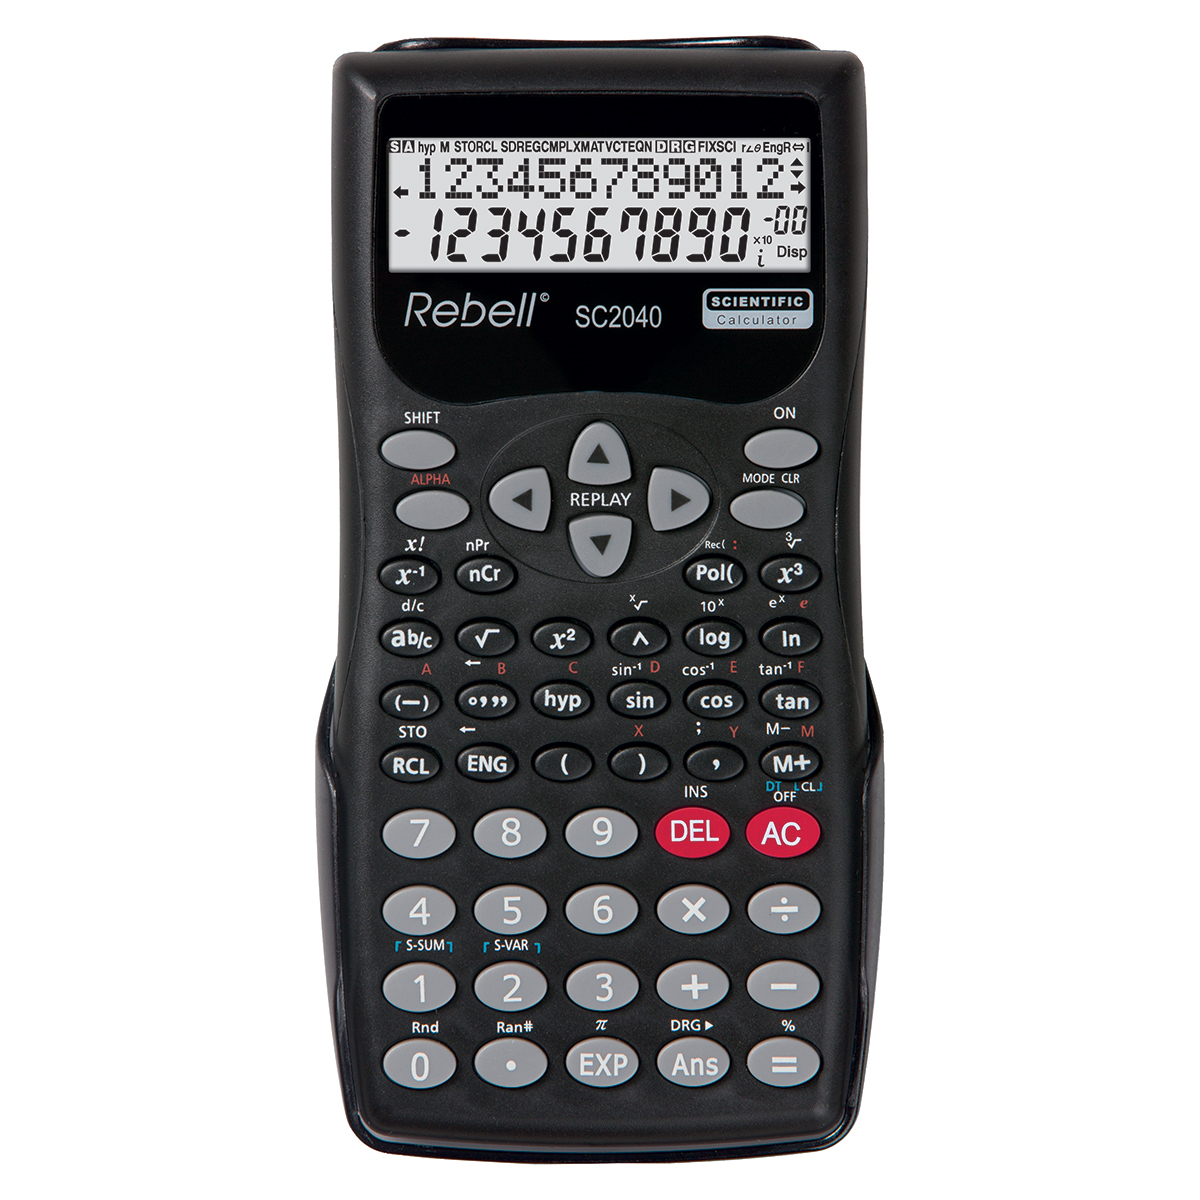 Rebell SC2040 Scientific Calculator